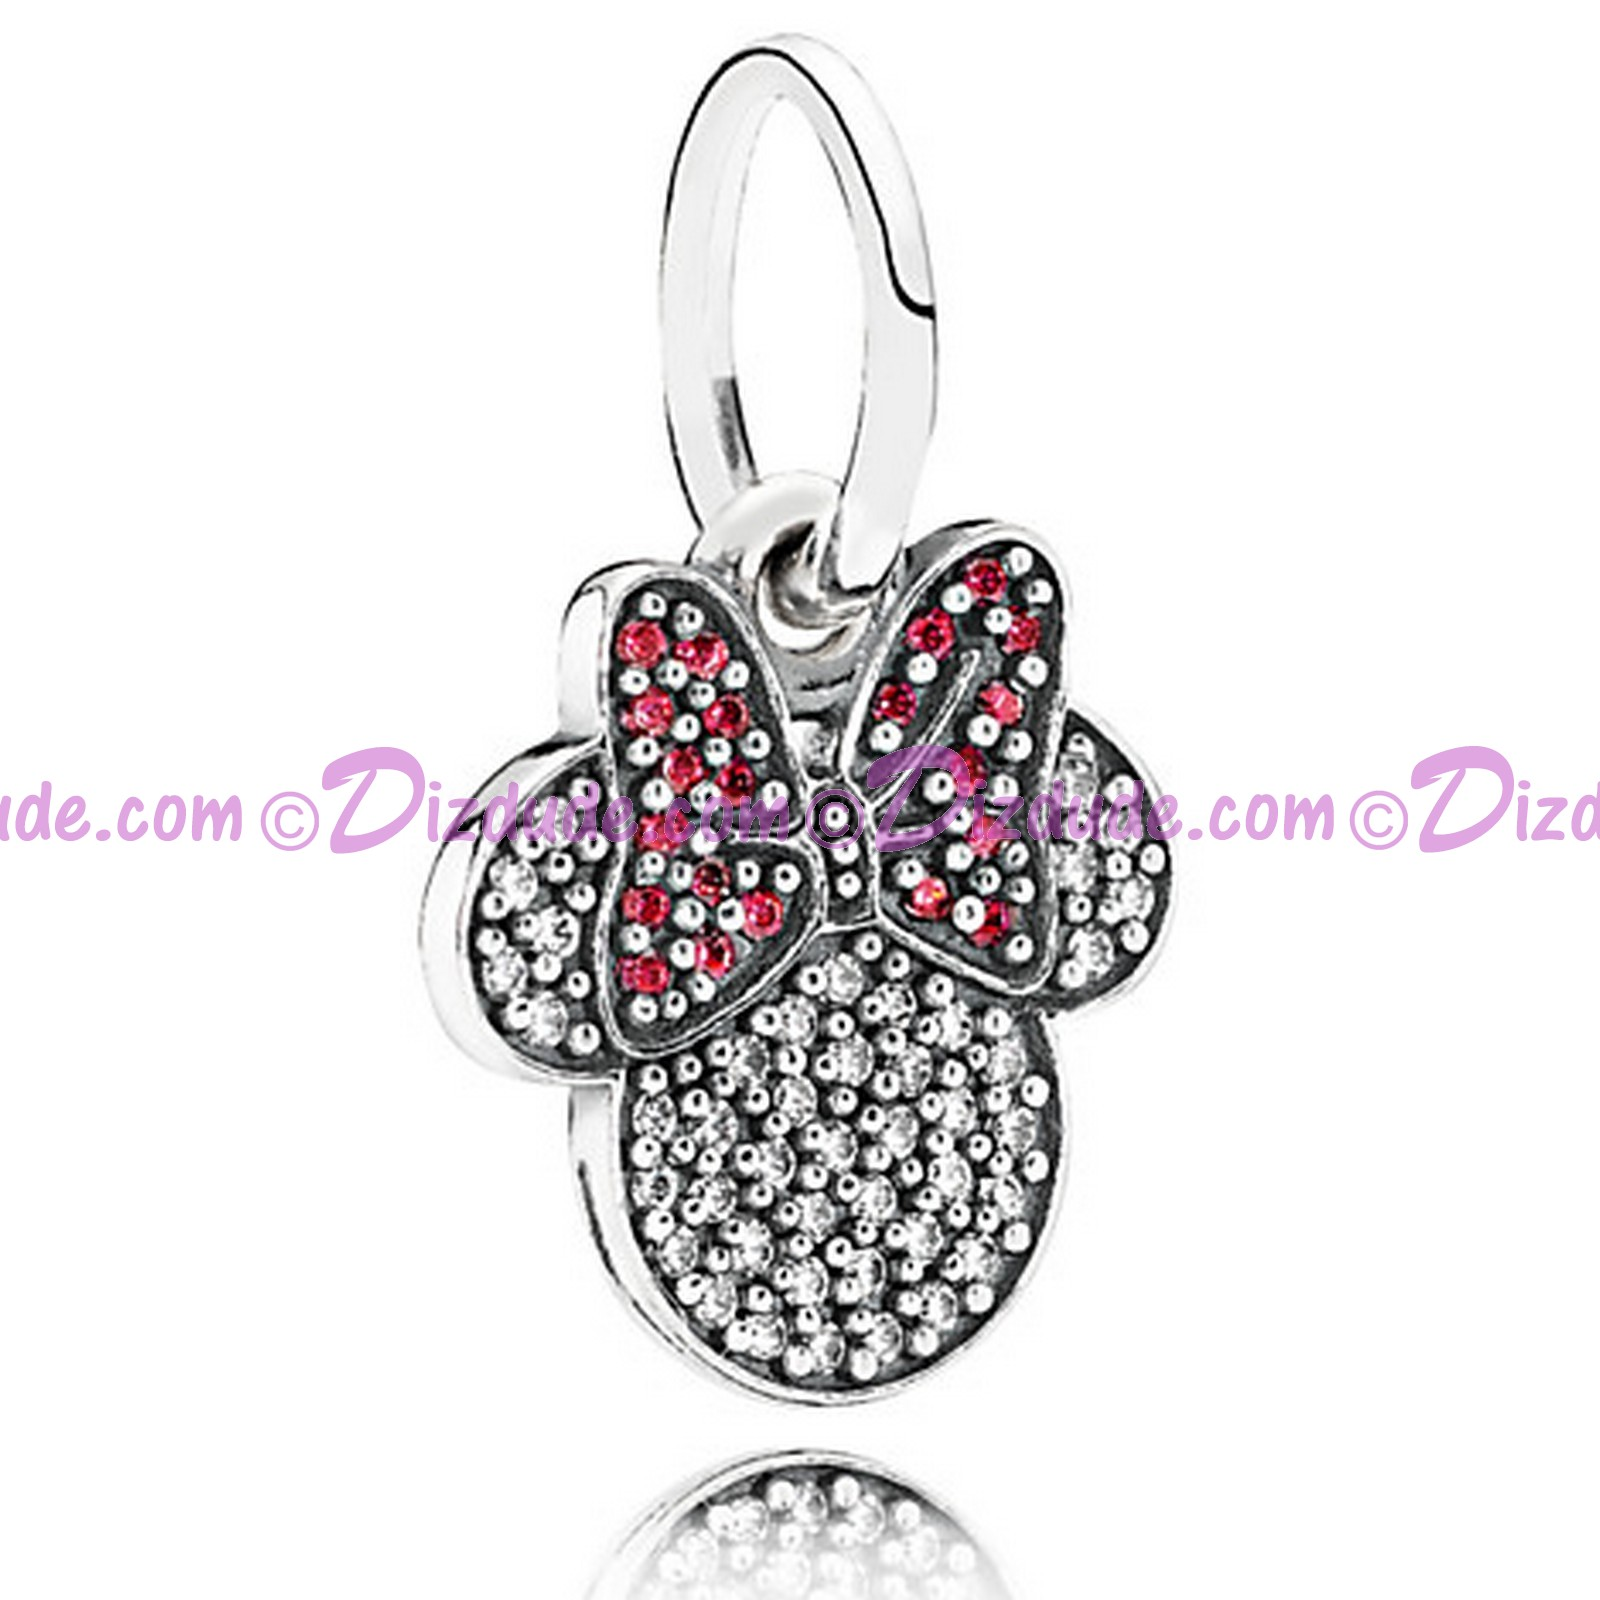 """(SOLD OUT) Disney Pandora """"Sparkling Minnie Icon"""" Sterling Silver Charm with Cubic Zirconias"""